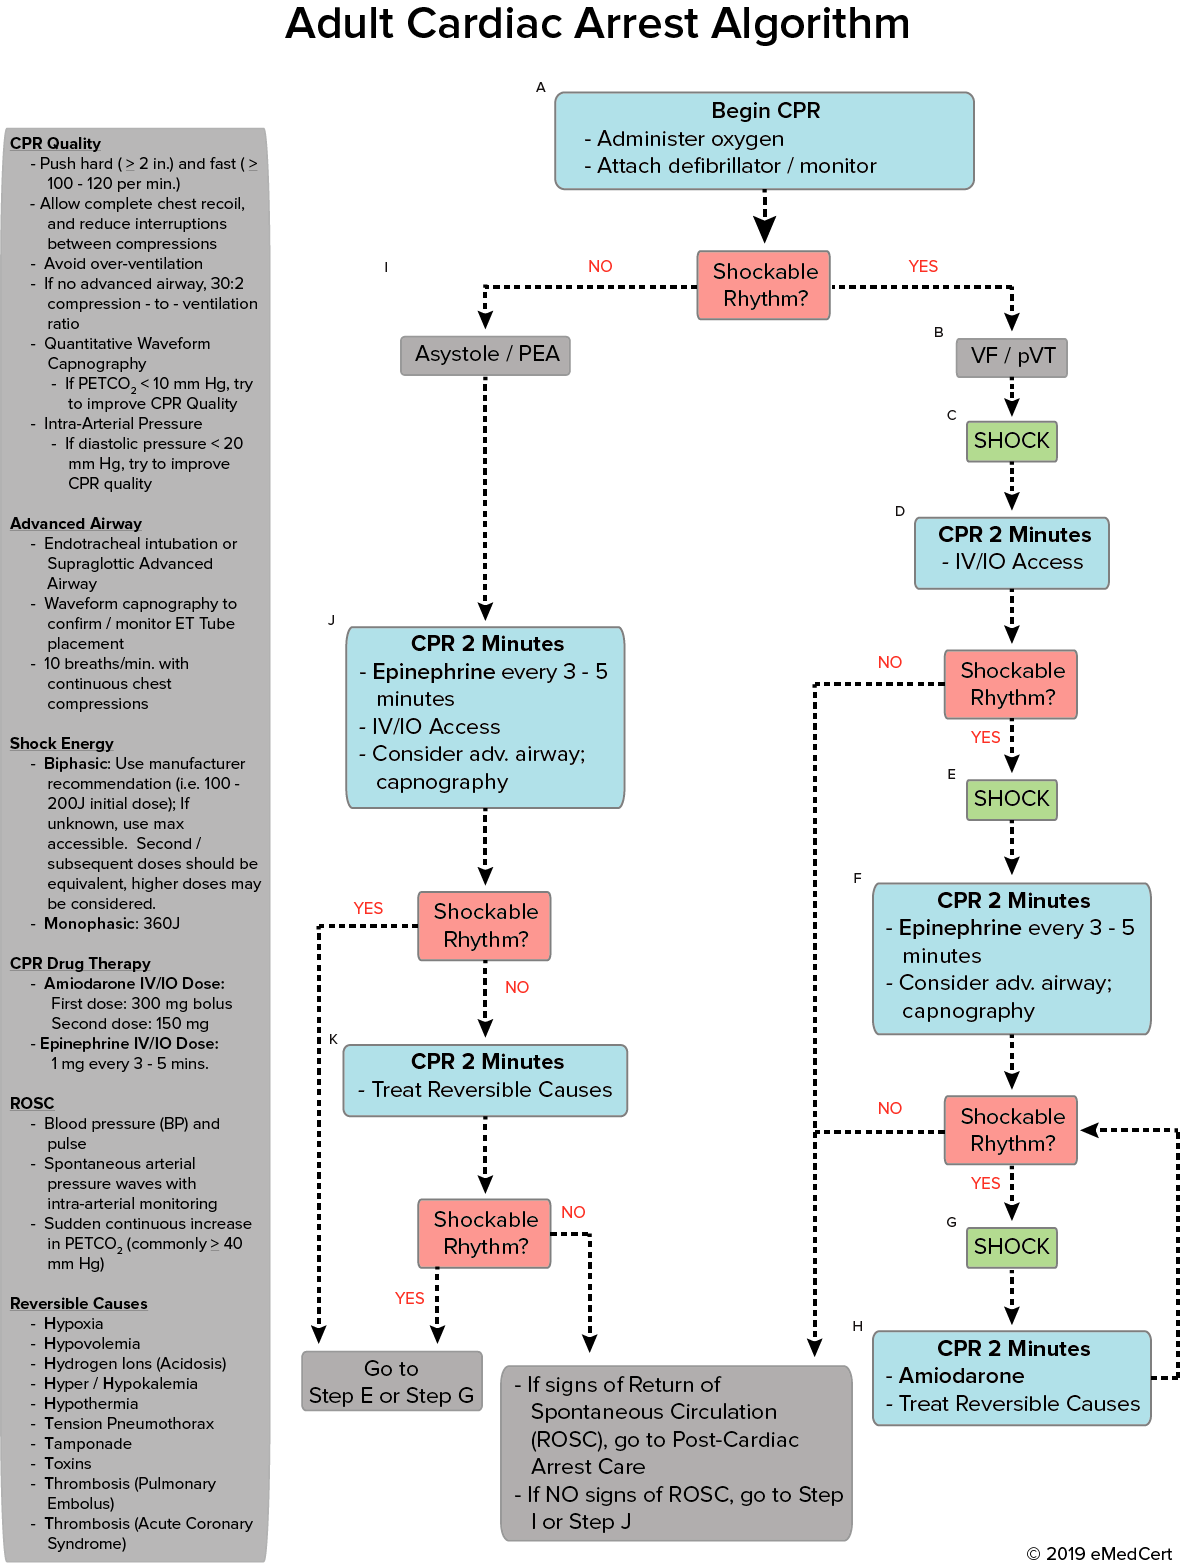 ACLS Adult Cardiac Arrest Algorithm